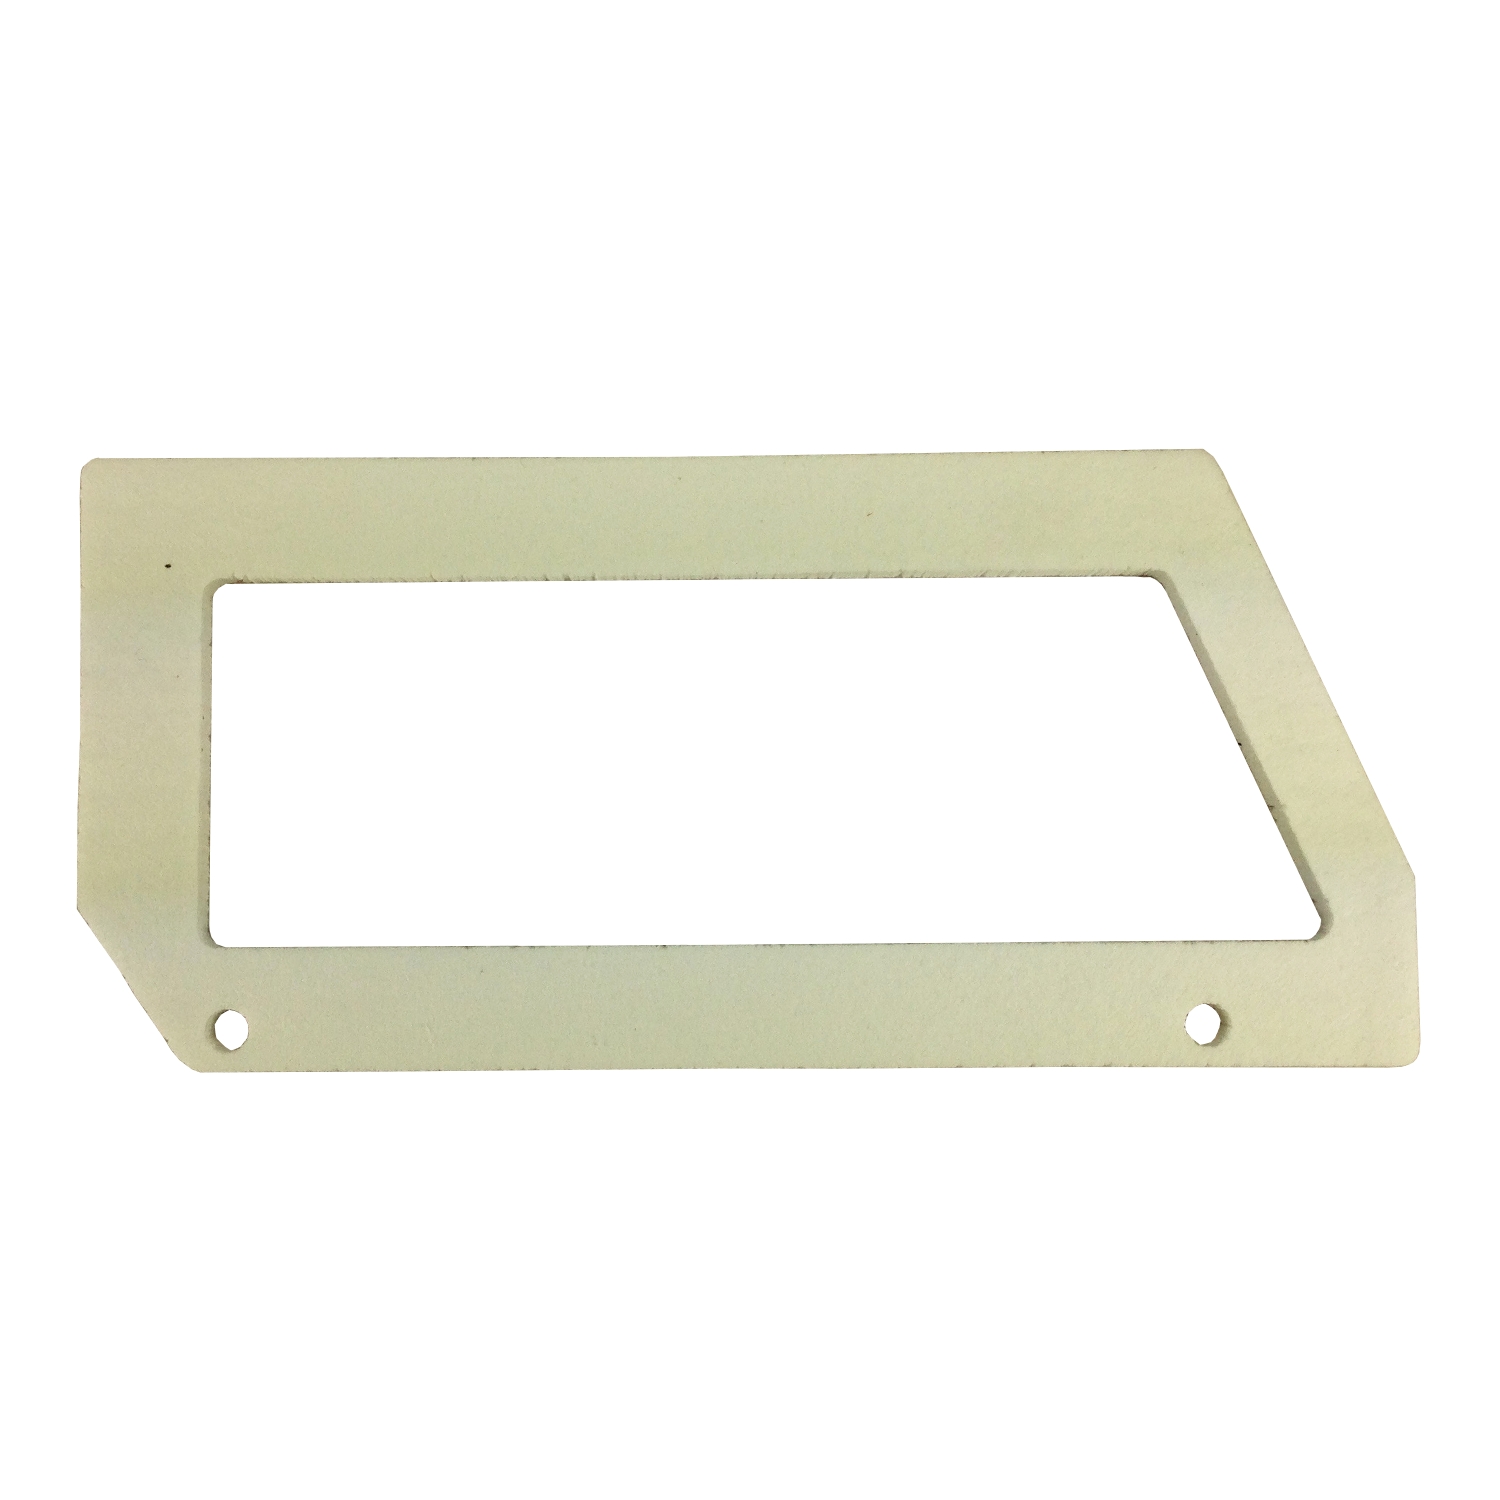 "H7631 | 1/4"" Gasket for Bella, by Lennox # H7631"